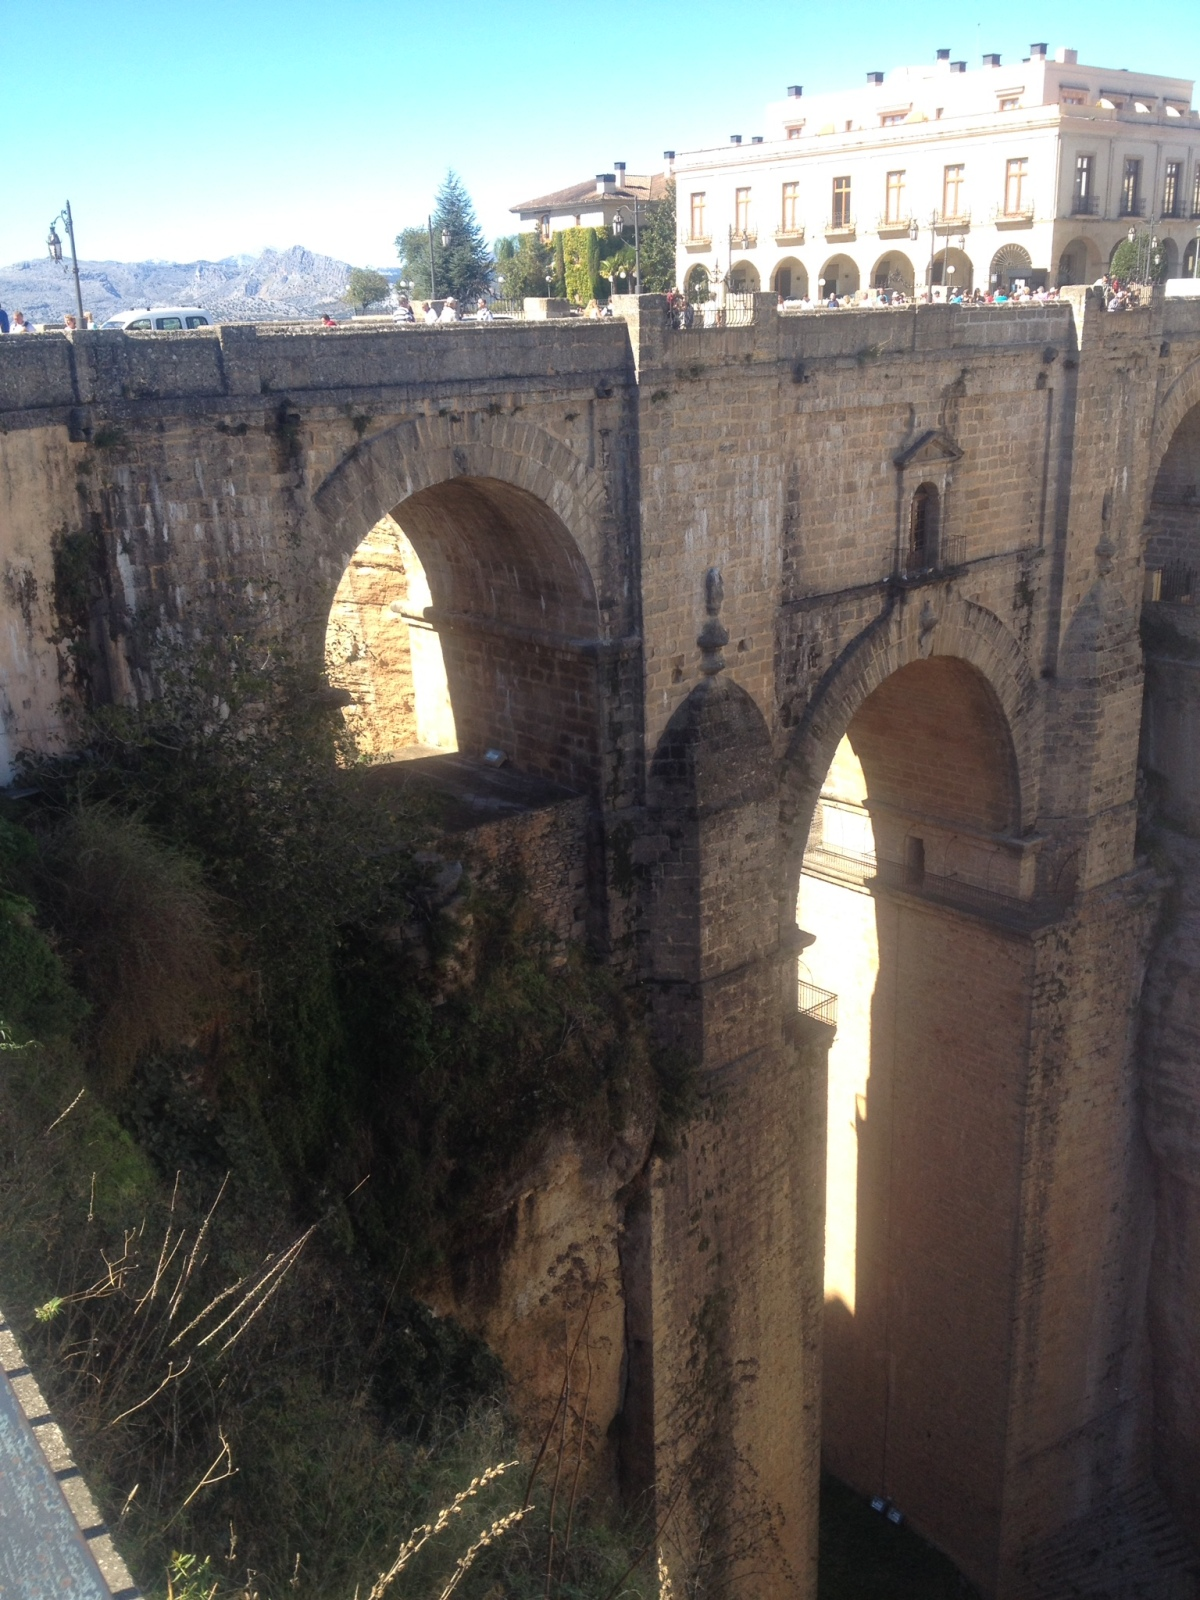 My Day Trip Adventure to Ronda, Espana